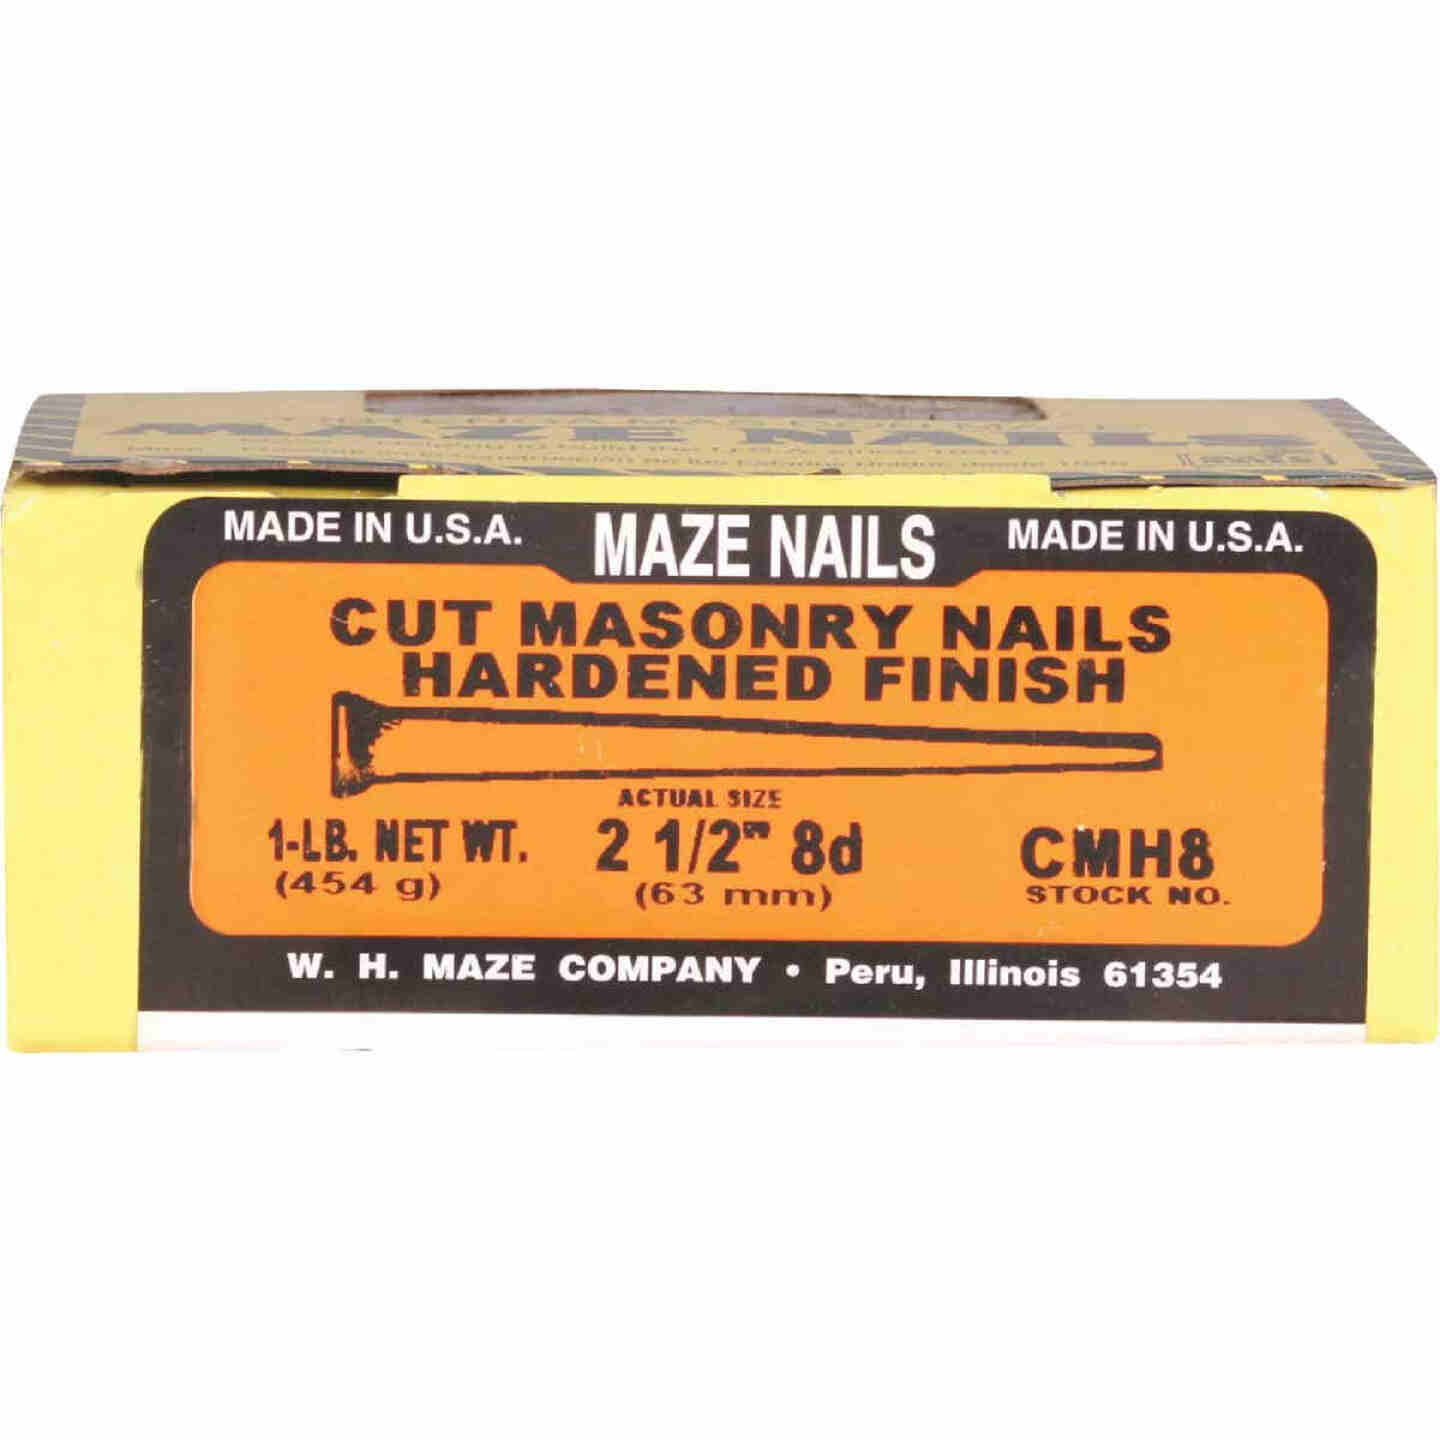 Maze 8d x 2-1/2 In. Hardened Steel Tapered Masonry Nails (64 Ct., 1 Lb.)  Image 2